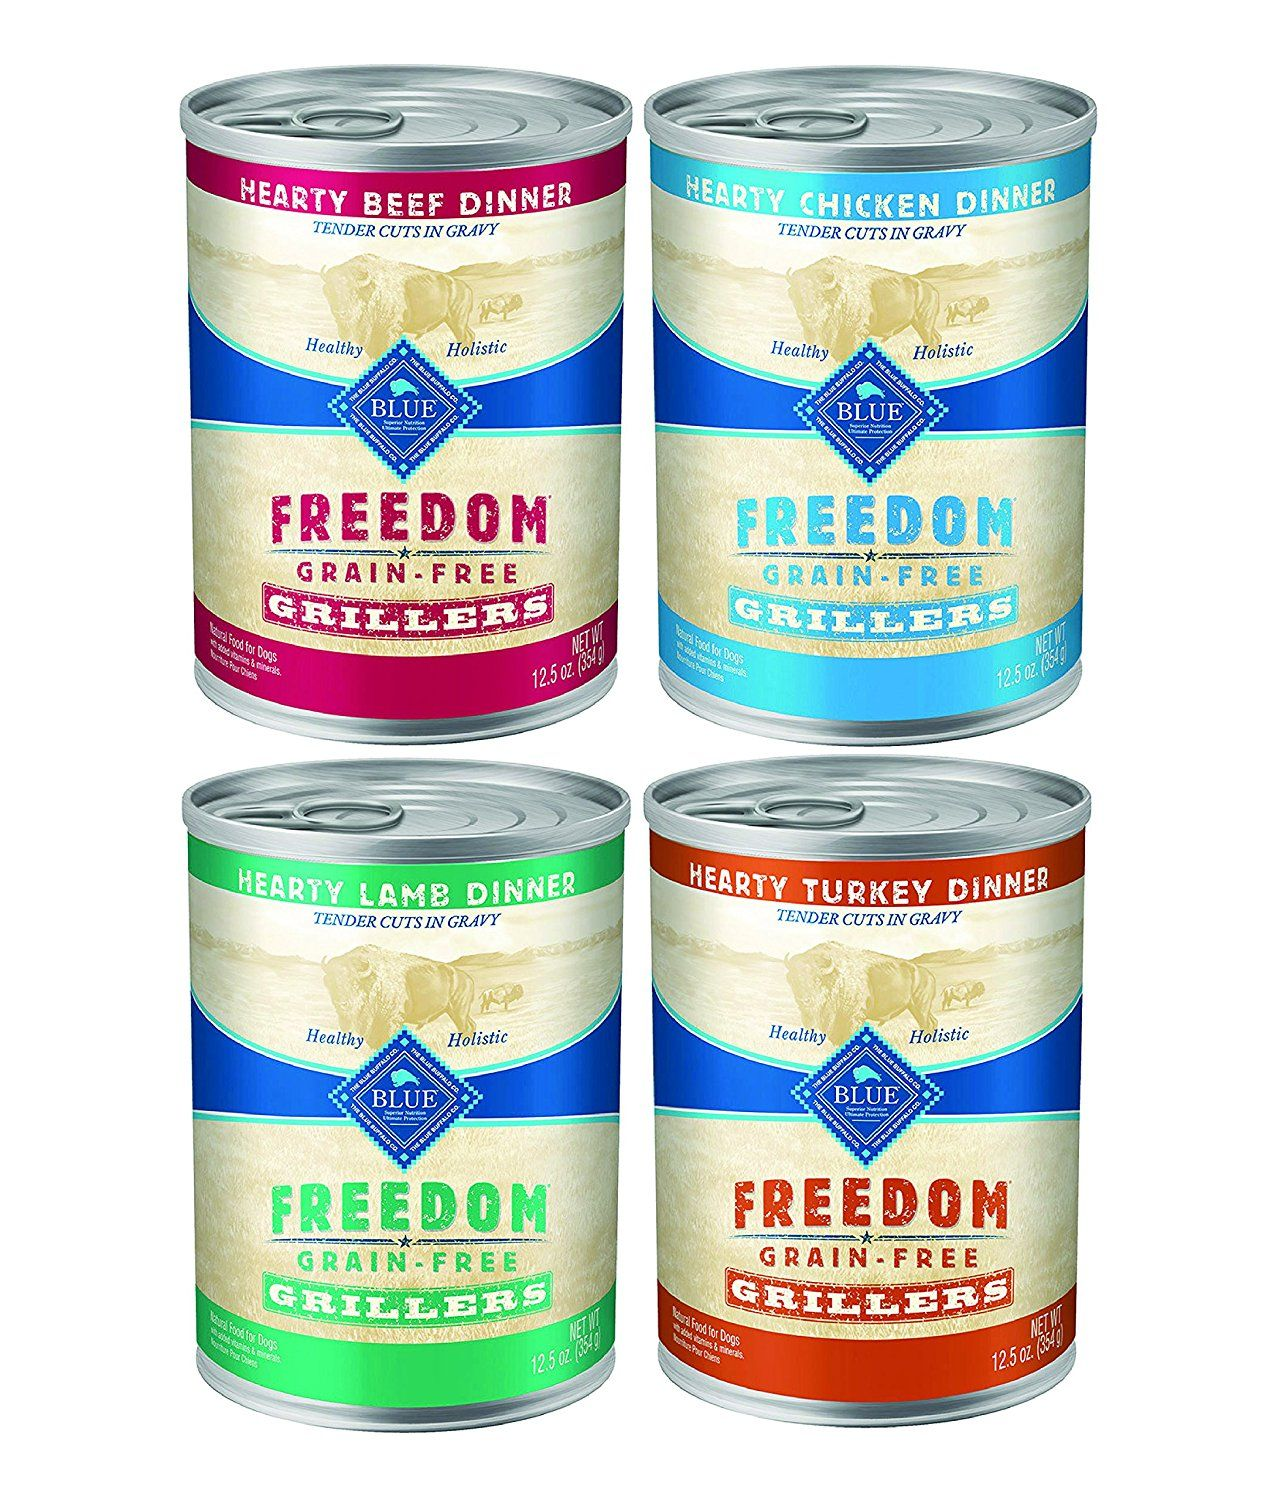 Blue buffalo blue freedom grillers canned dog food mixed